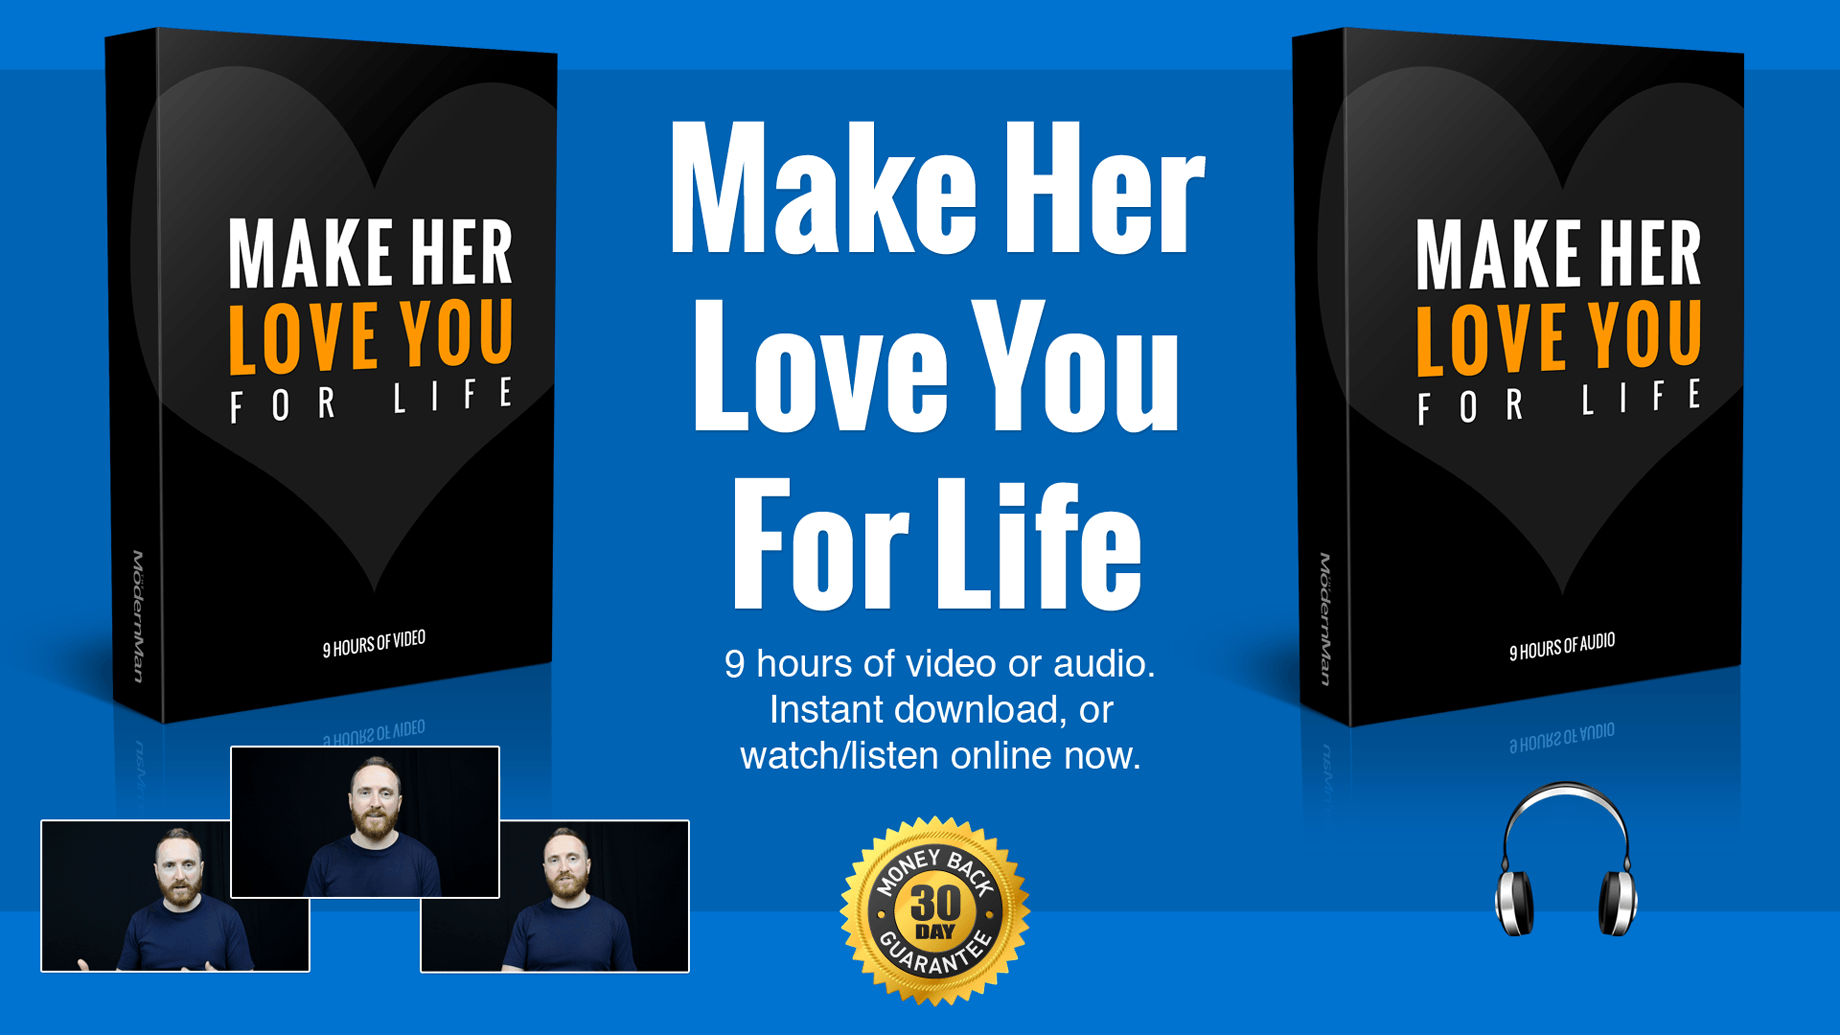 Make Her Love You For Life: Video and Audio Version